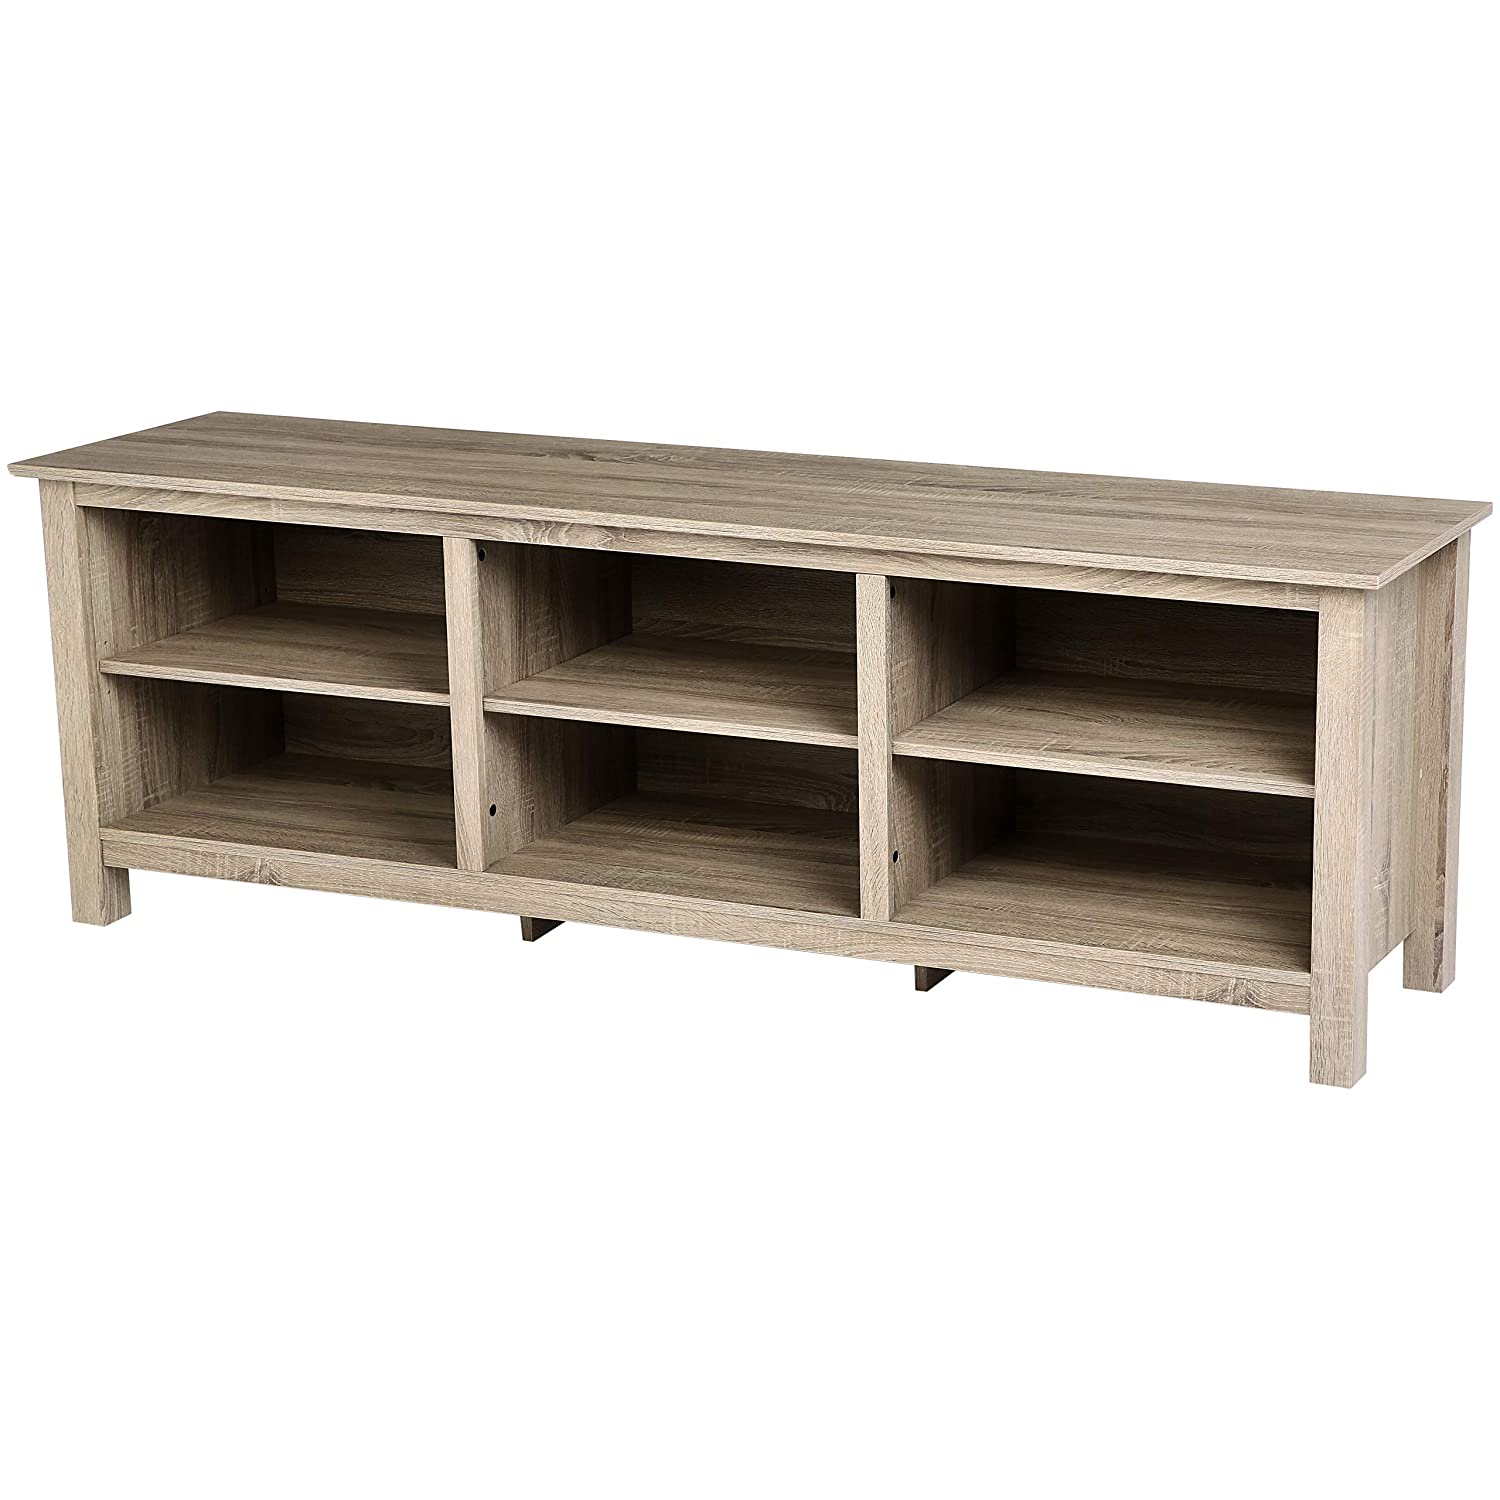 Amazon Com Rockpoint Argus 70 Inch Wood Tv Stand Media Console